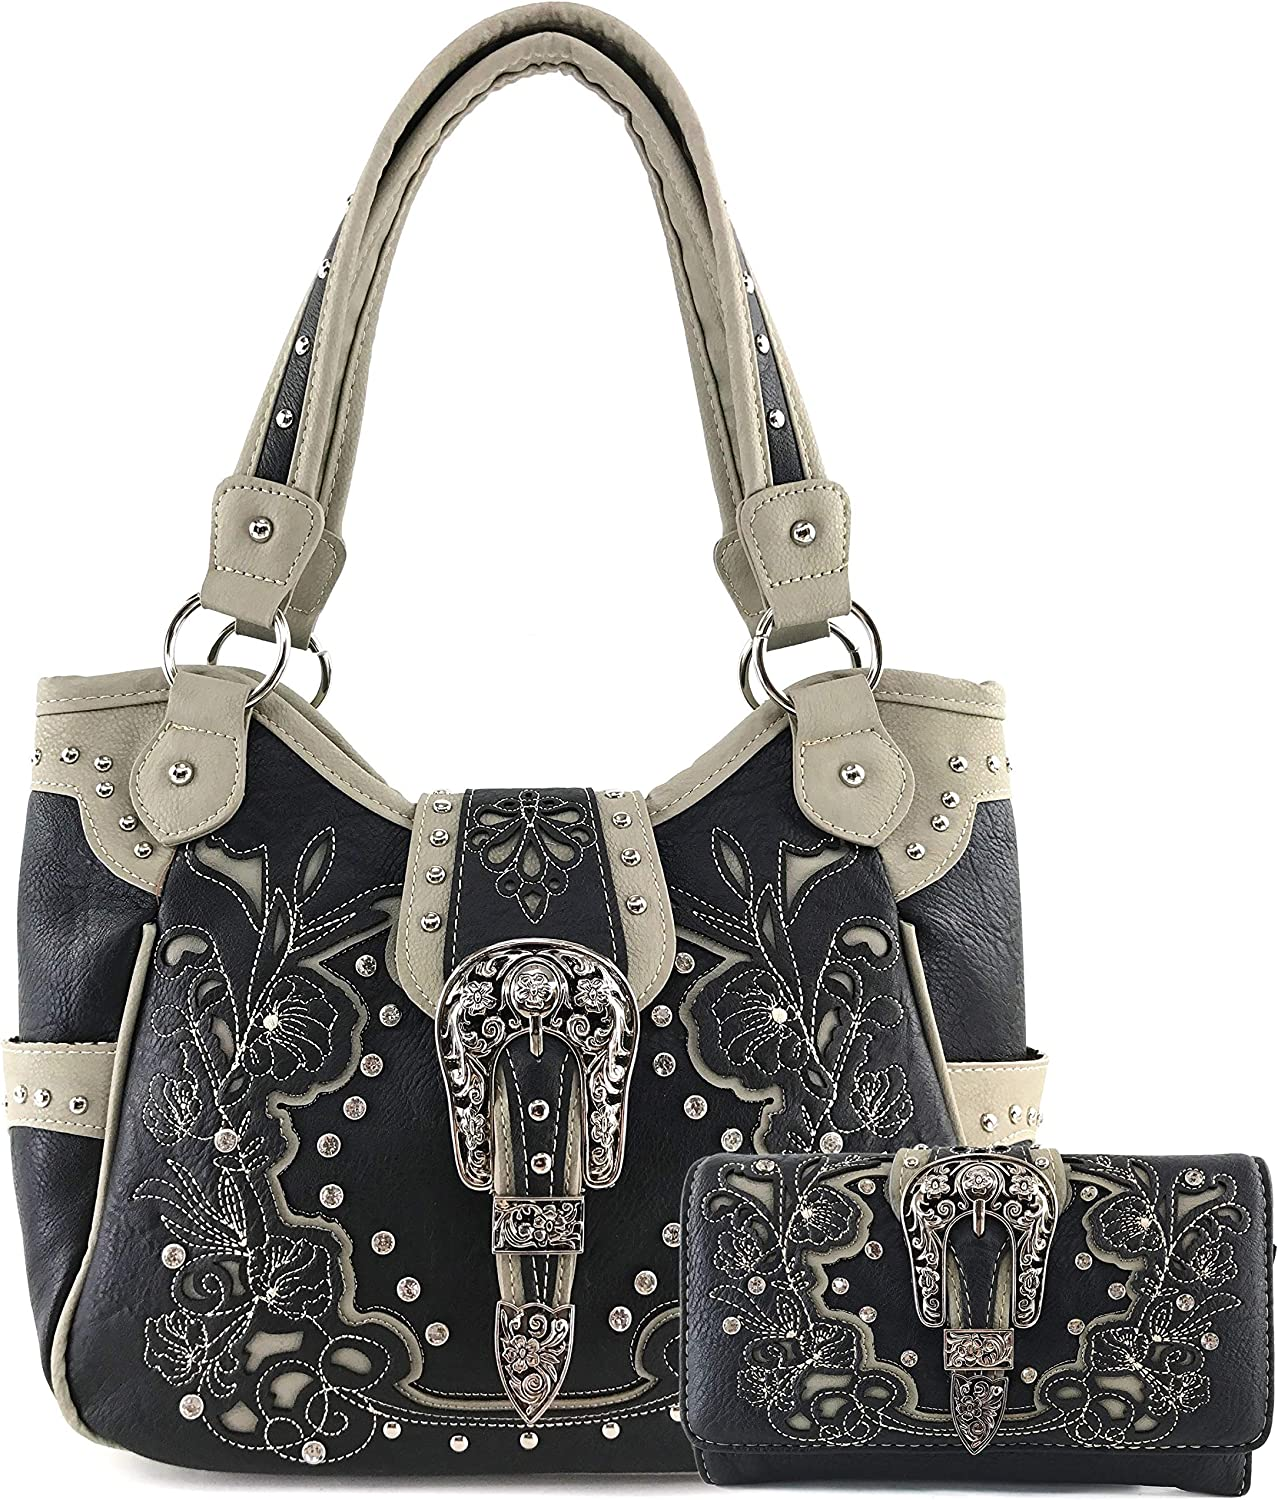 Zelris Western Floral Blossom Buckle Tote Ha 在庫一掃 Women Carry Conceal 40%OFFの激安セール